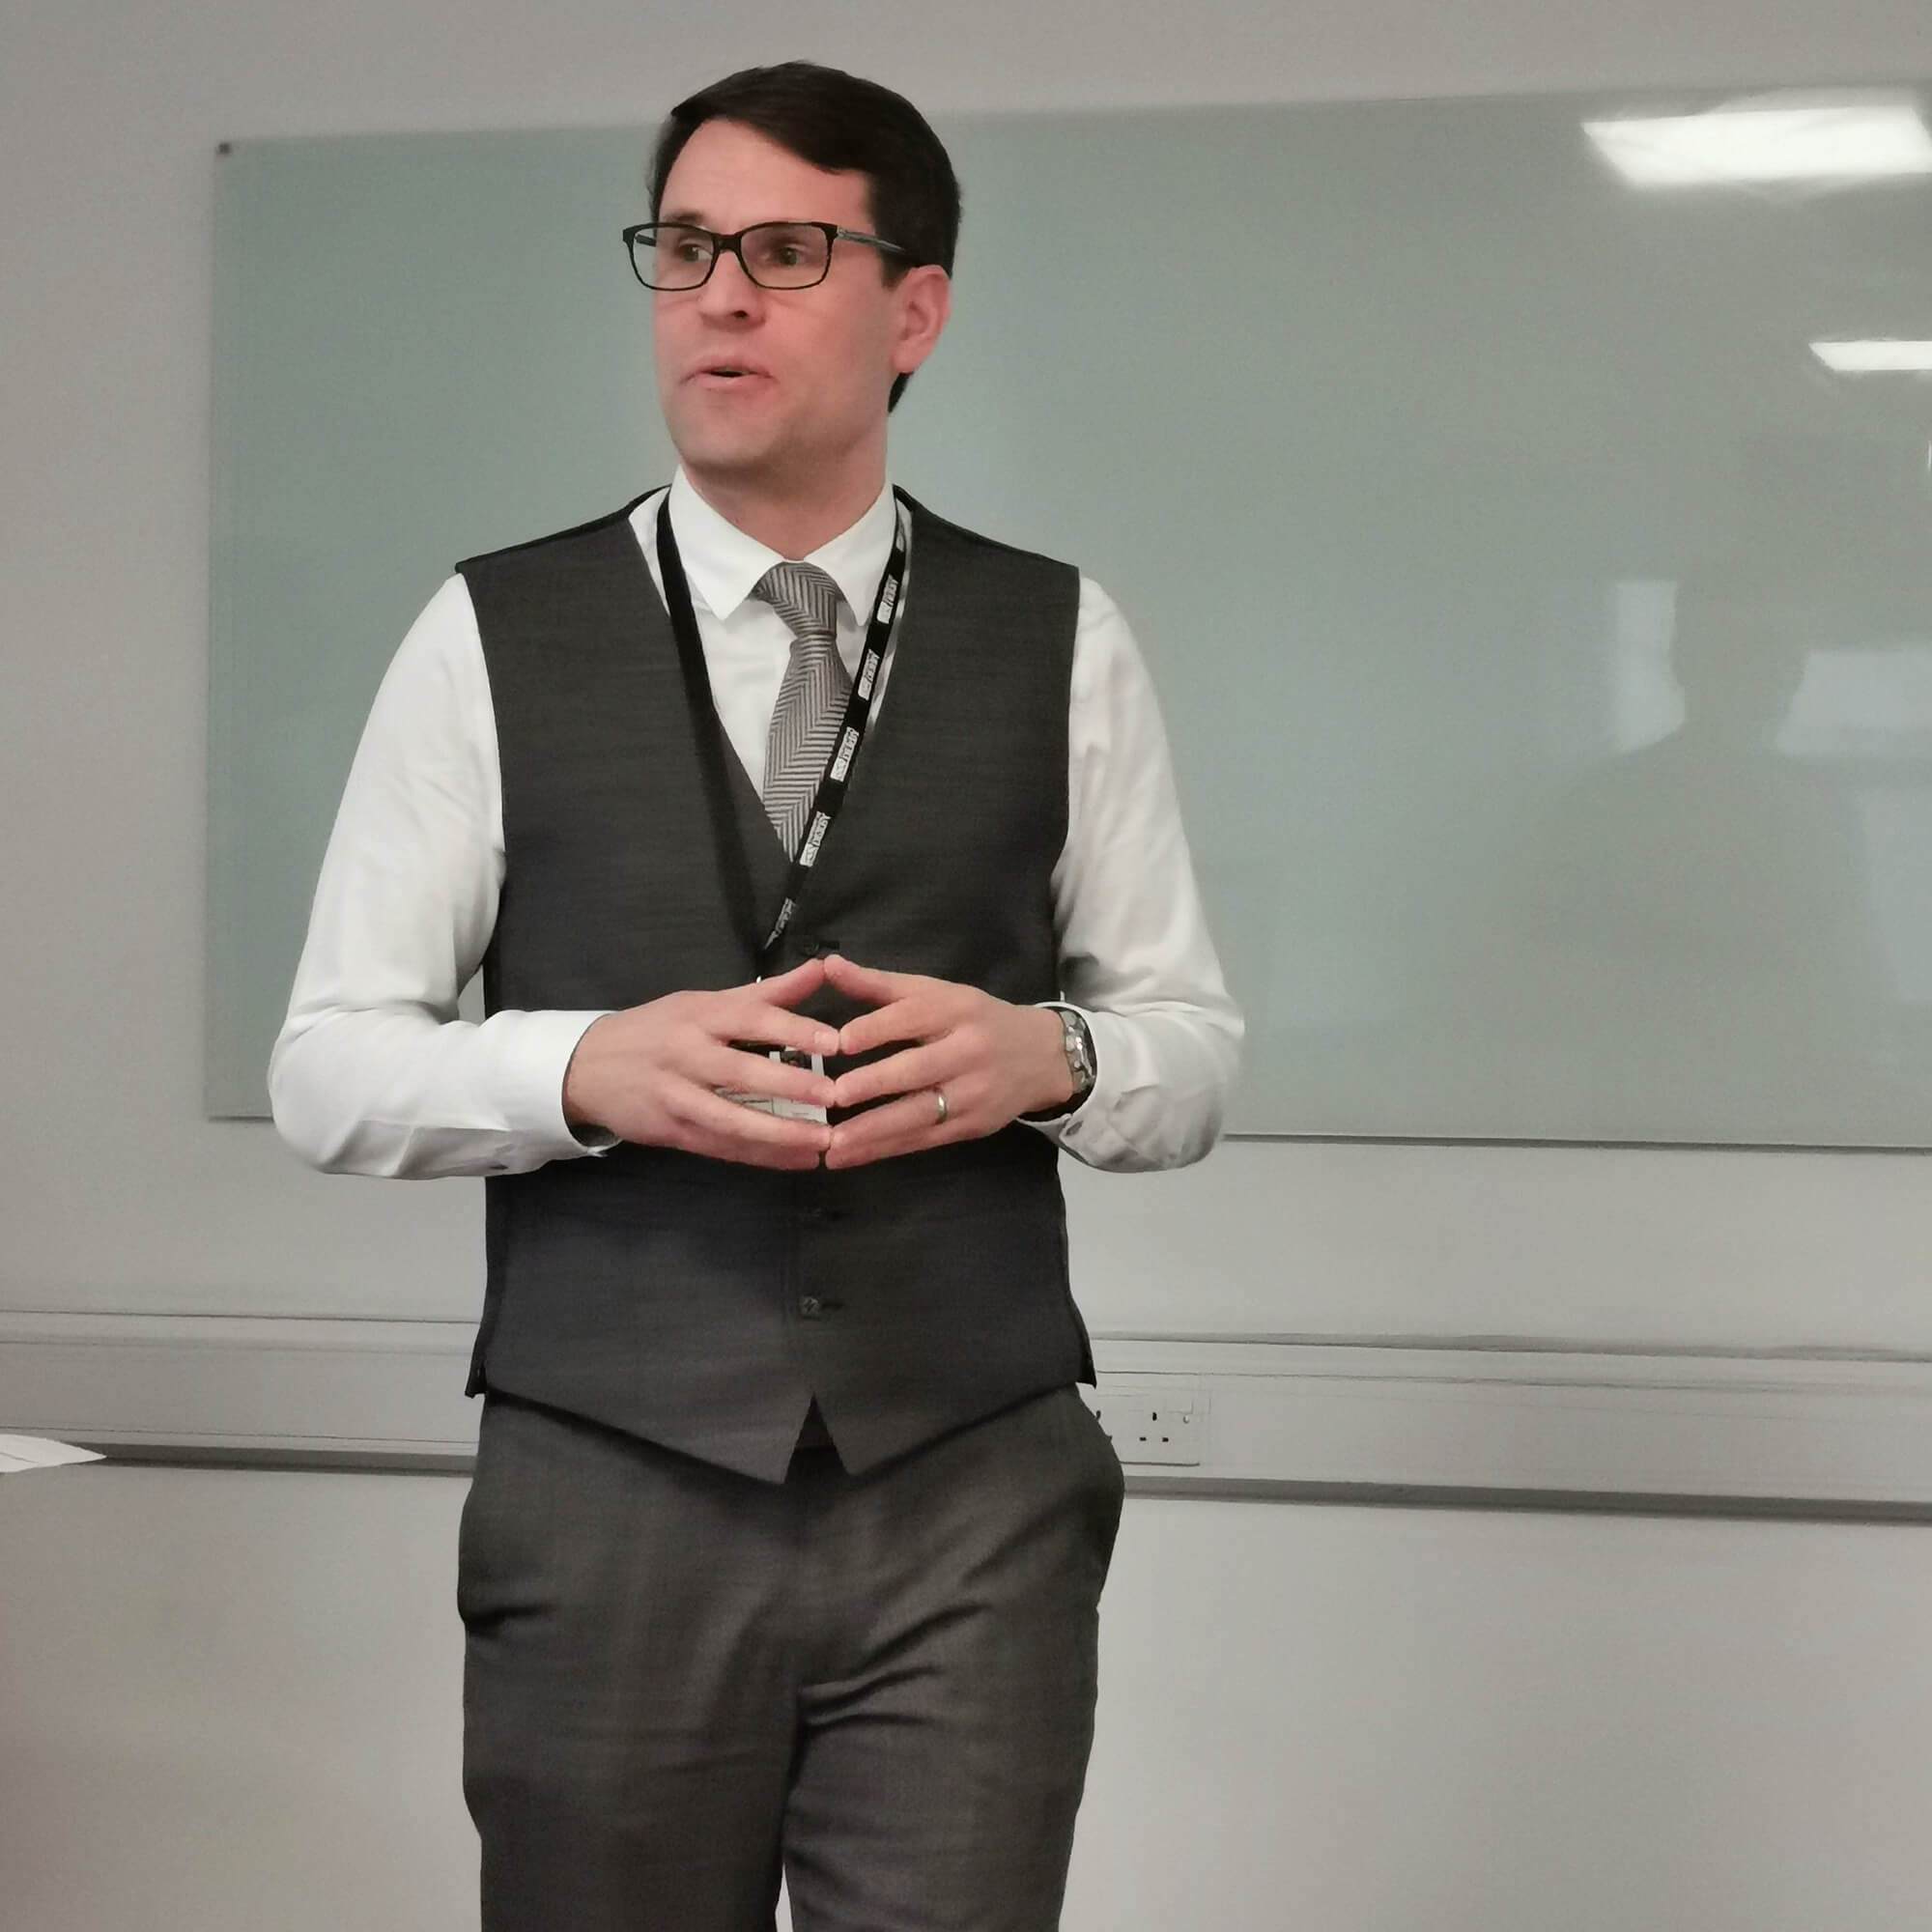 Lee Pridmore in a classroom giving a lecture.